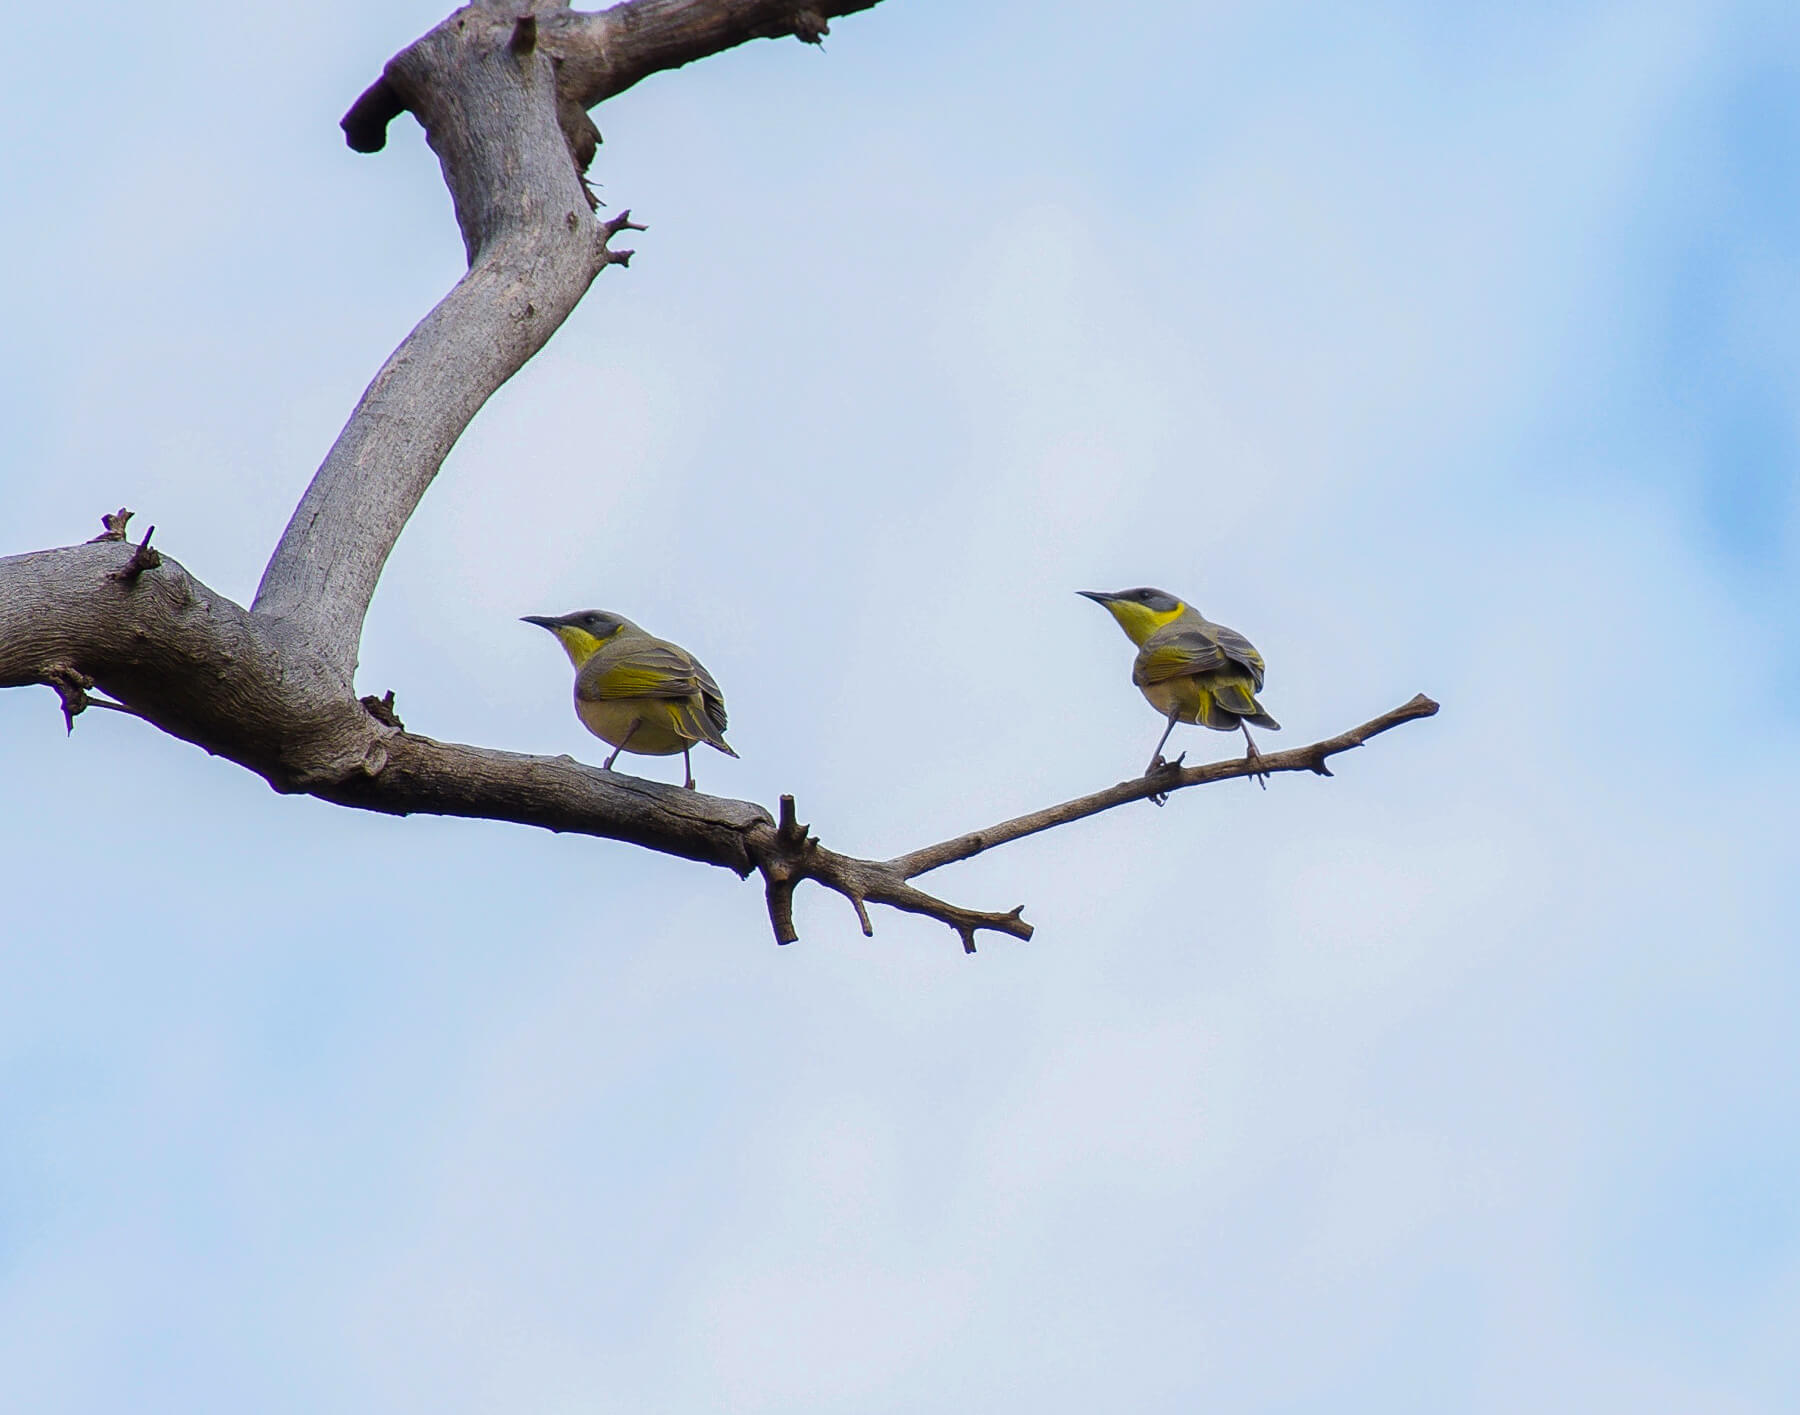 2 yellow finches sitting on branch